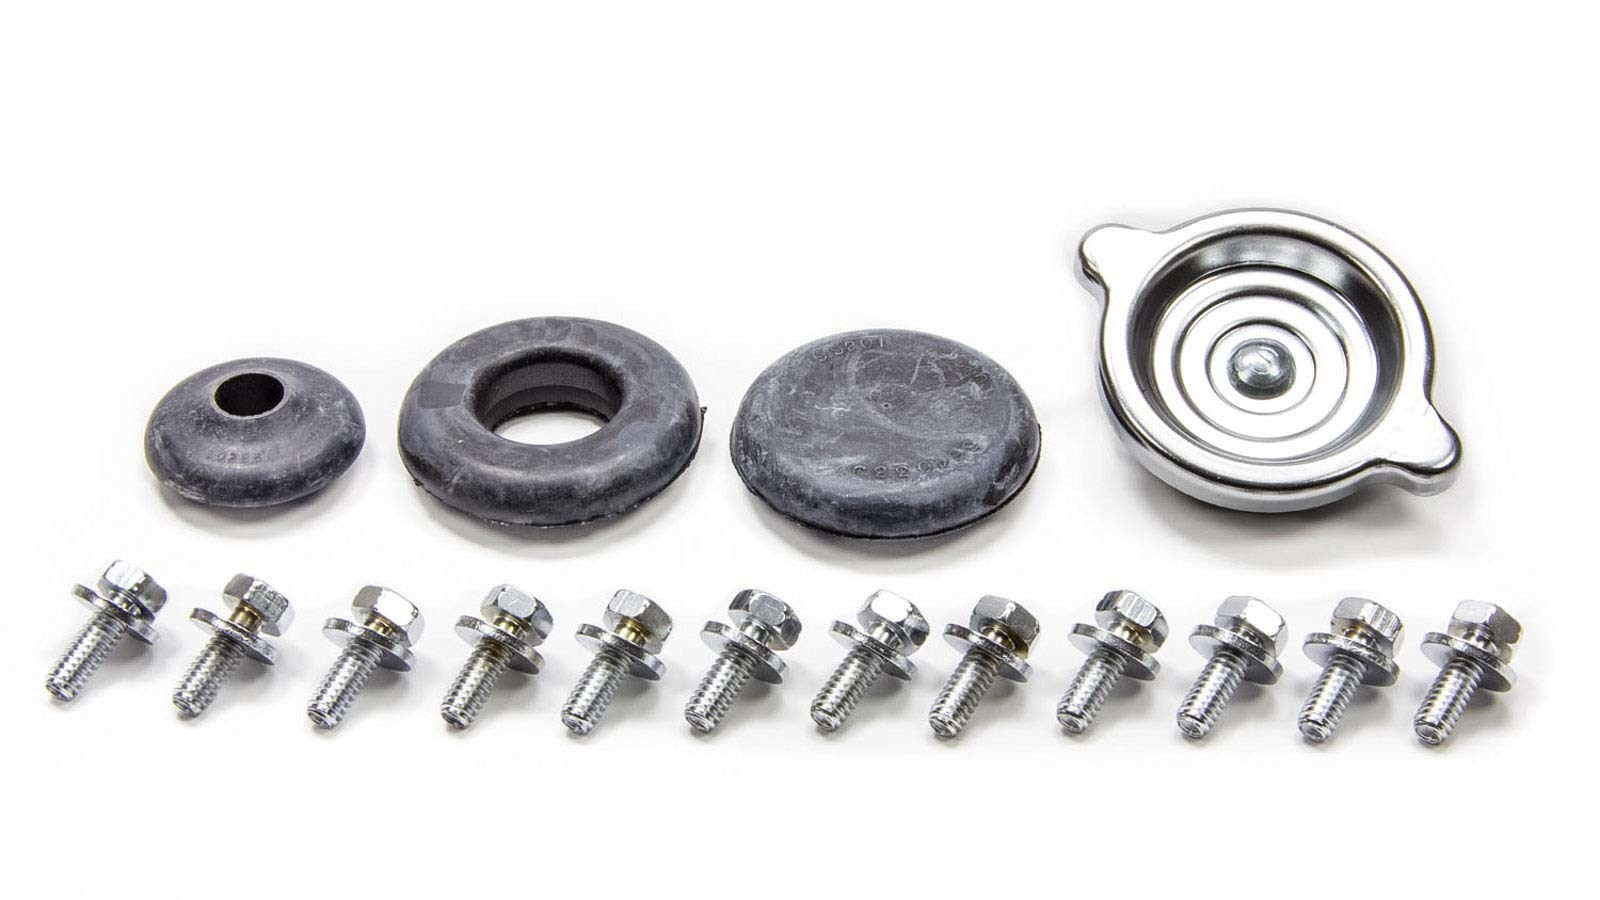 Valve Cover Acc. Pkg. with large grommet